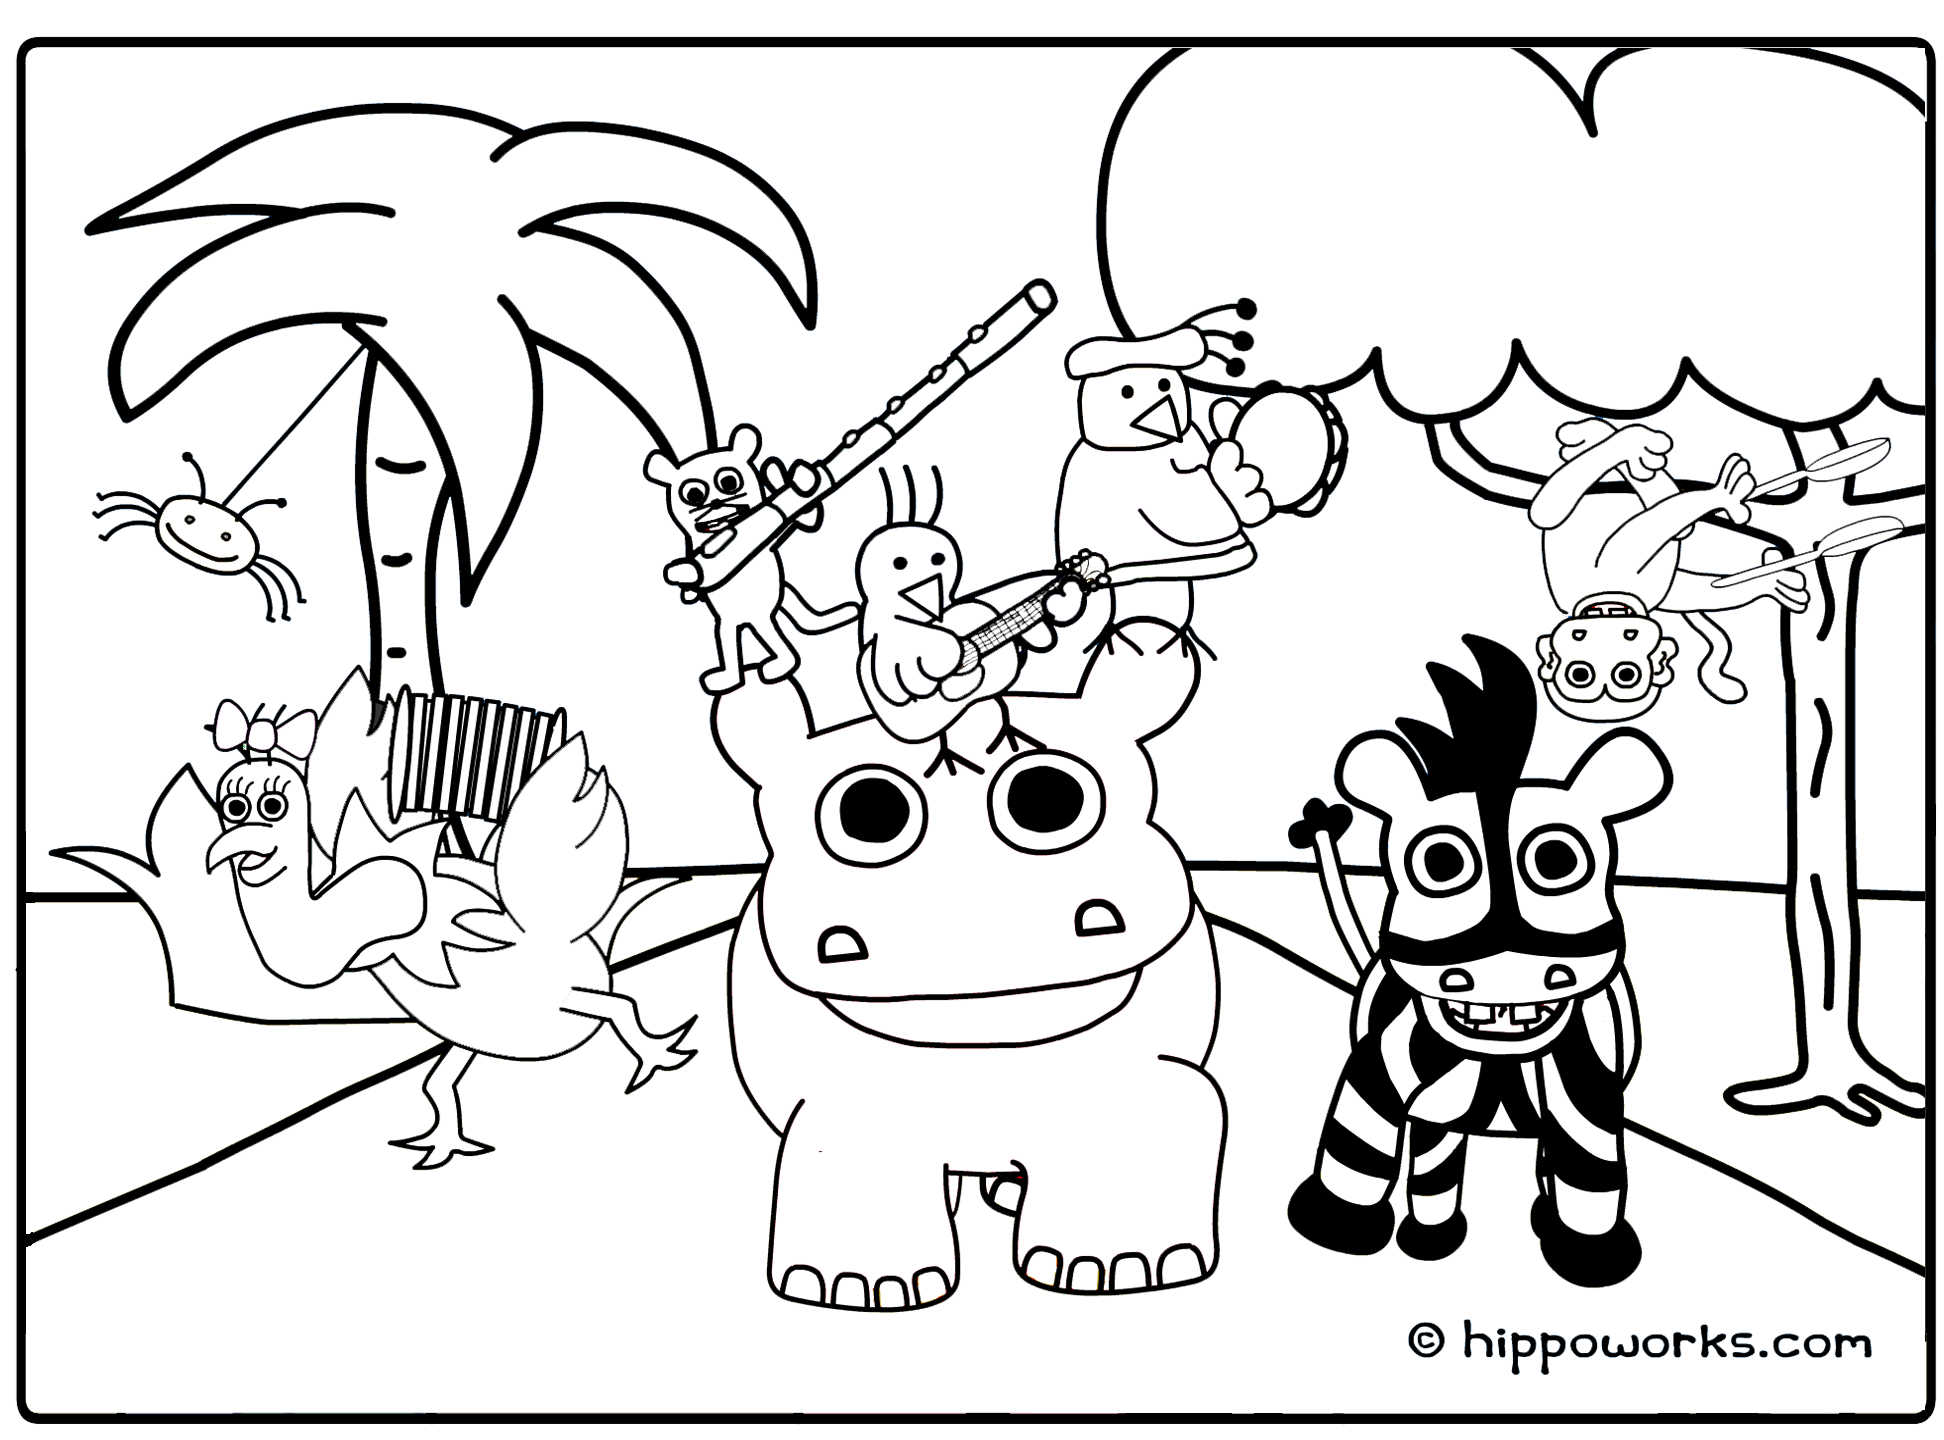 Jungle animal coloring pages to download and print for free for Animals coloring page